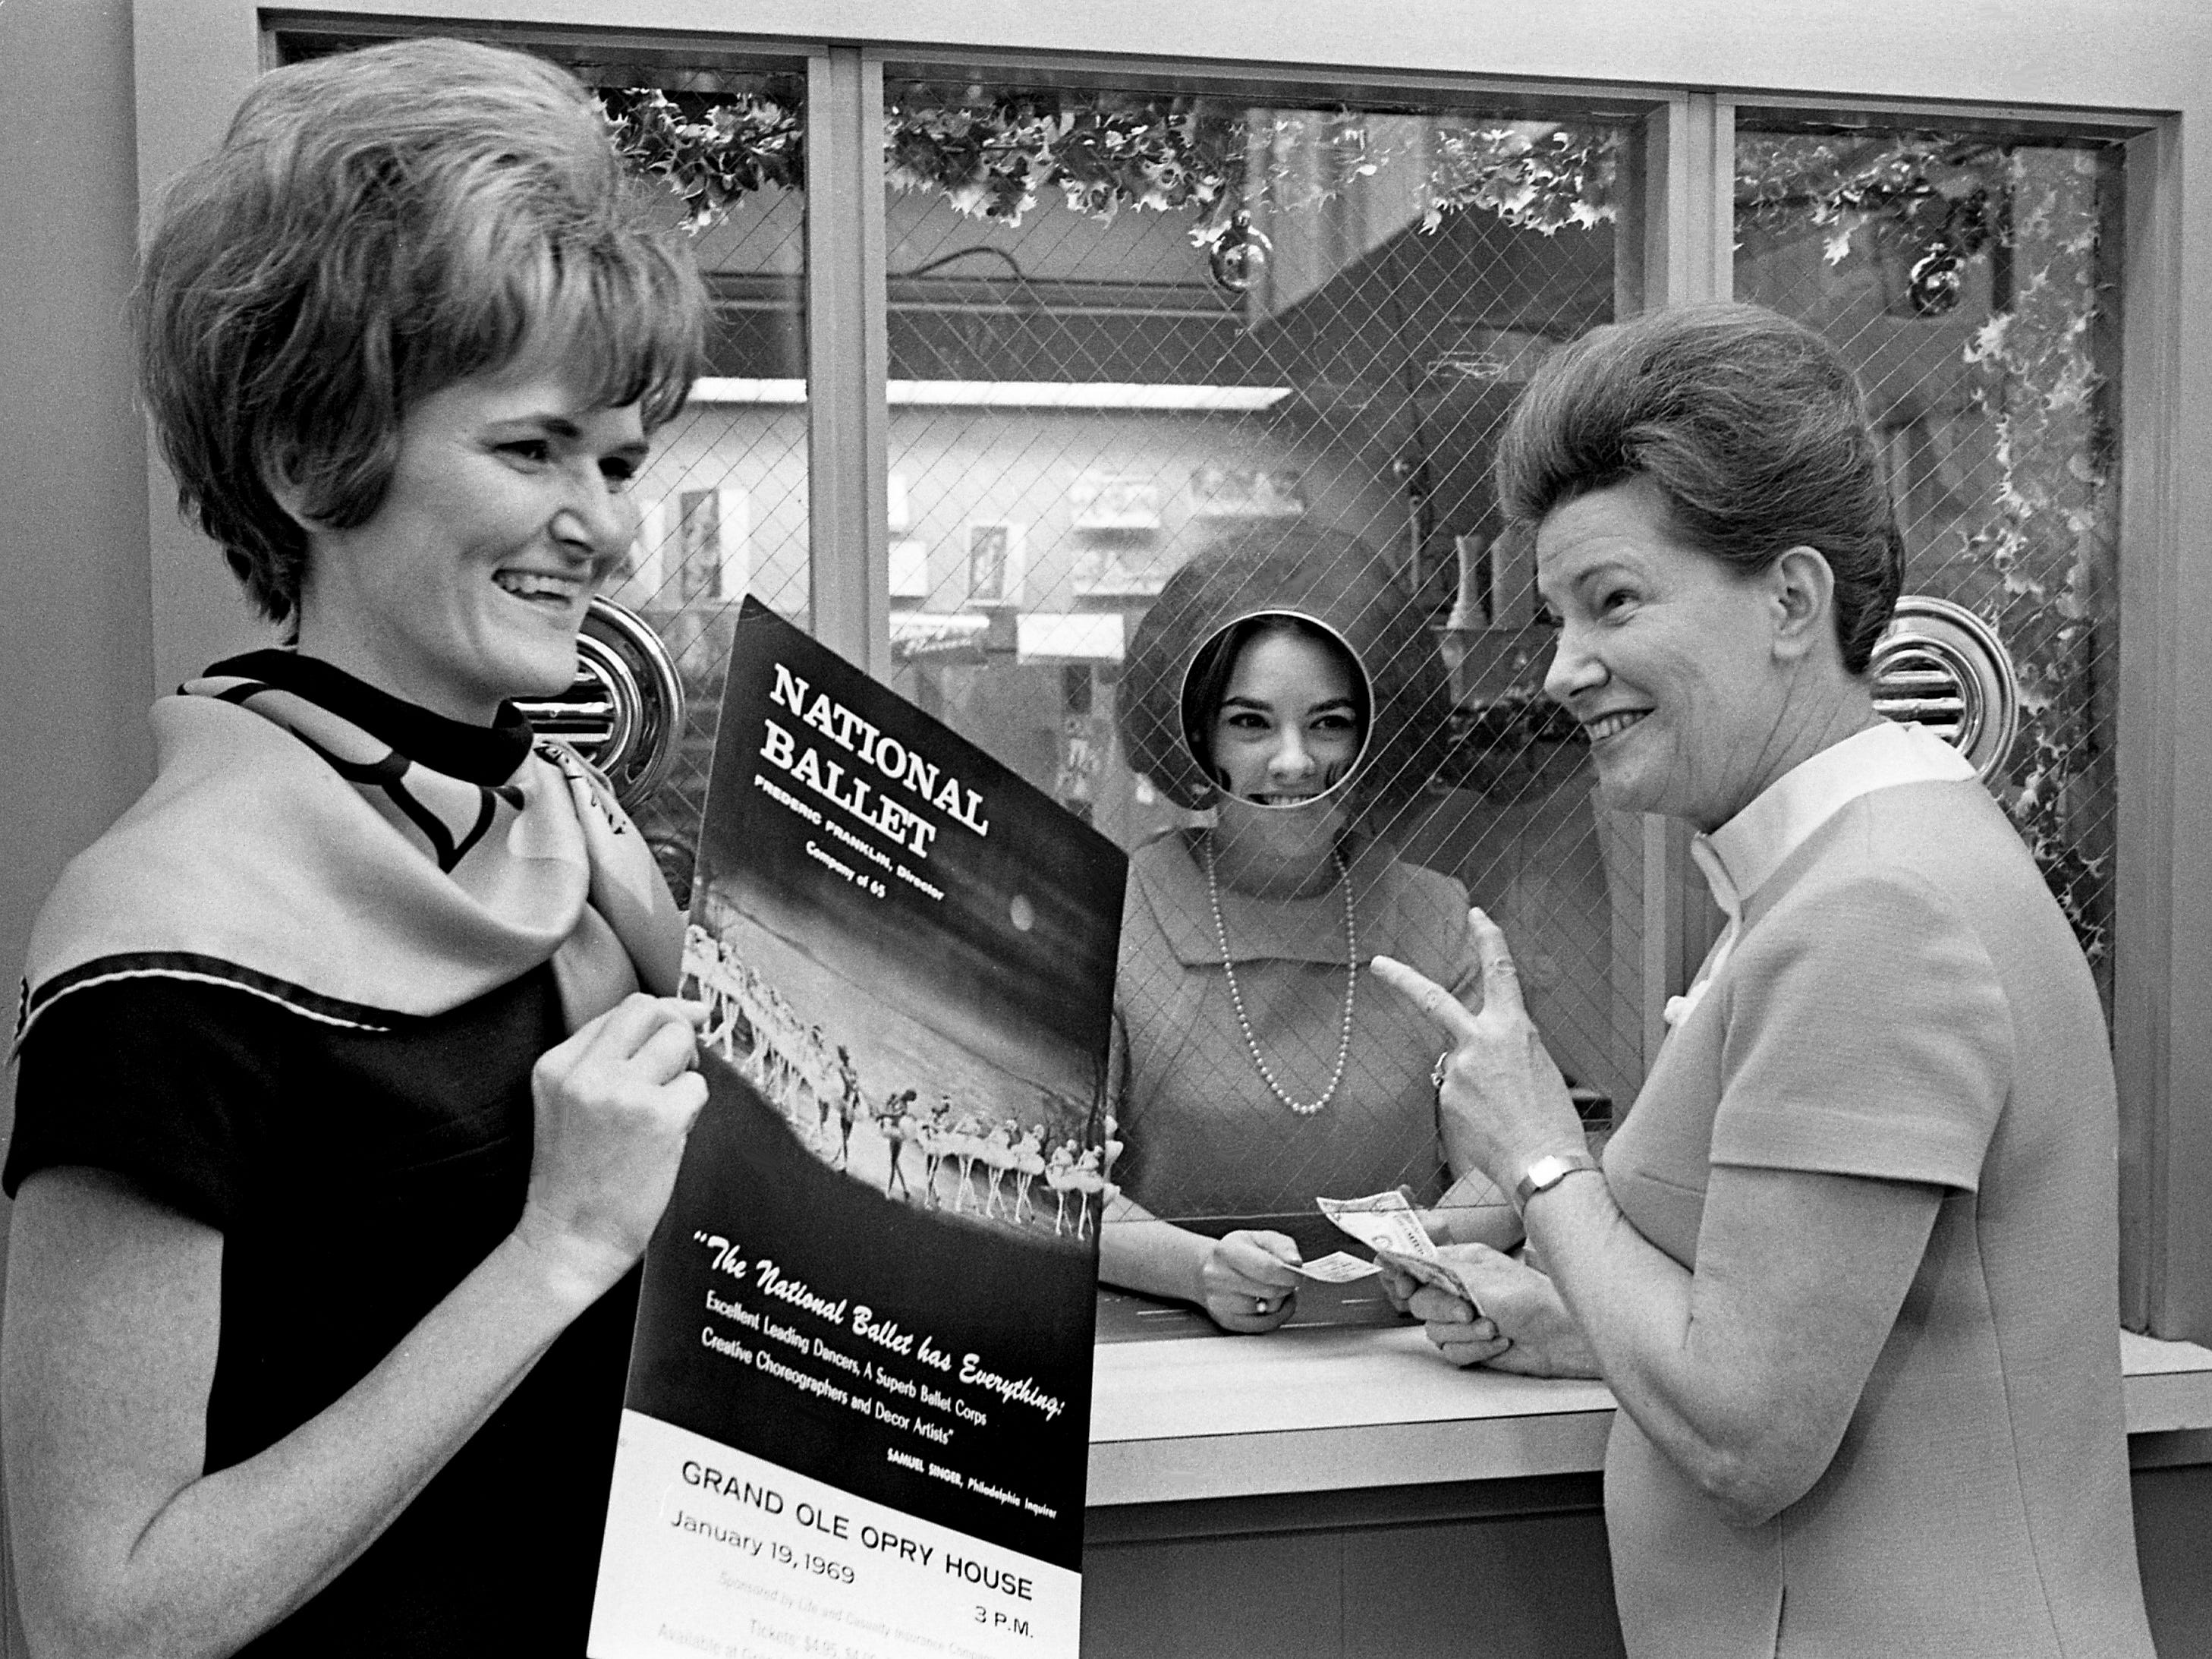 Minnie Pearl, right, first lady of the Grand Ole Opry, buys two tickets for the country's top ballet company, The National Ballet, at the Ryman Auditorium's ticket window Jan. 10, 1969. The classical ballet company, brought here by the Life and Casualty Insurance Co., will temporarily change the atmosphere at the Ryman on Jan. 19.